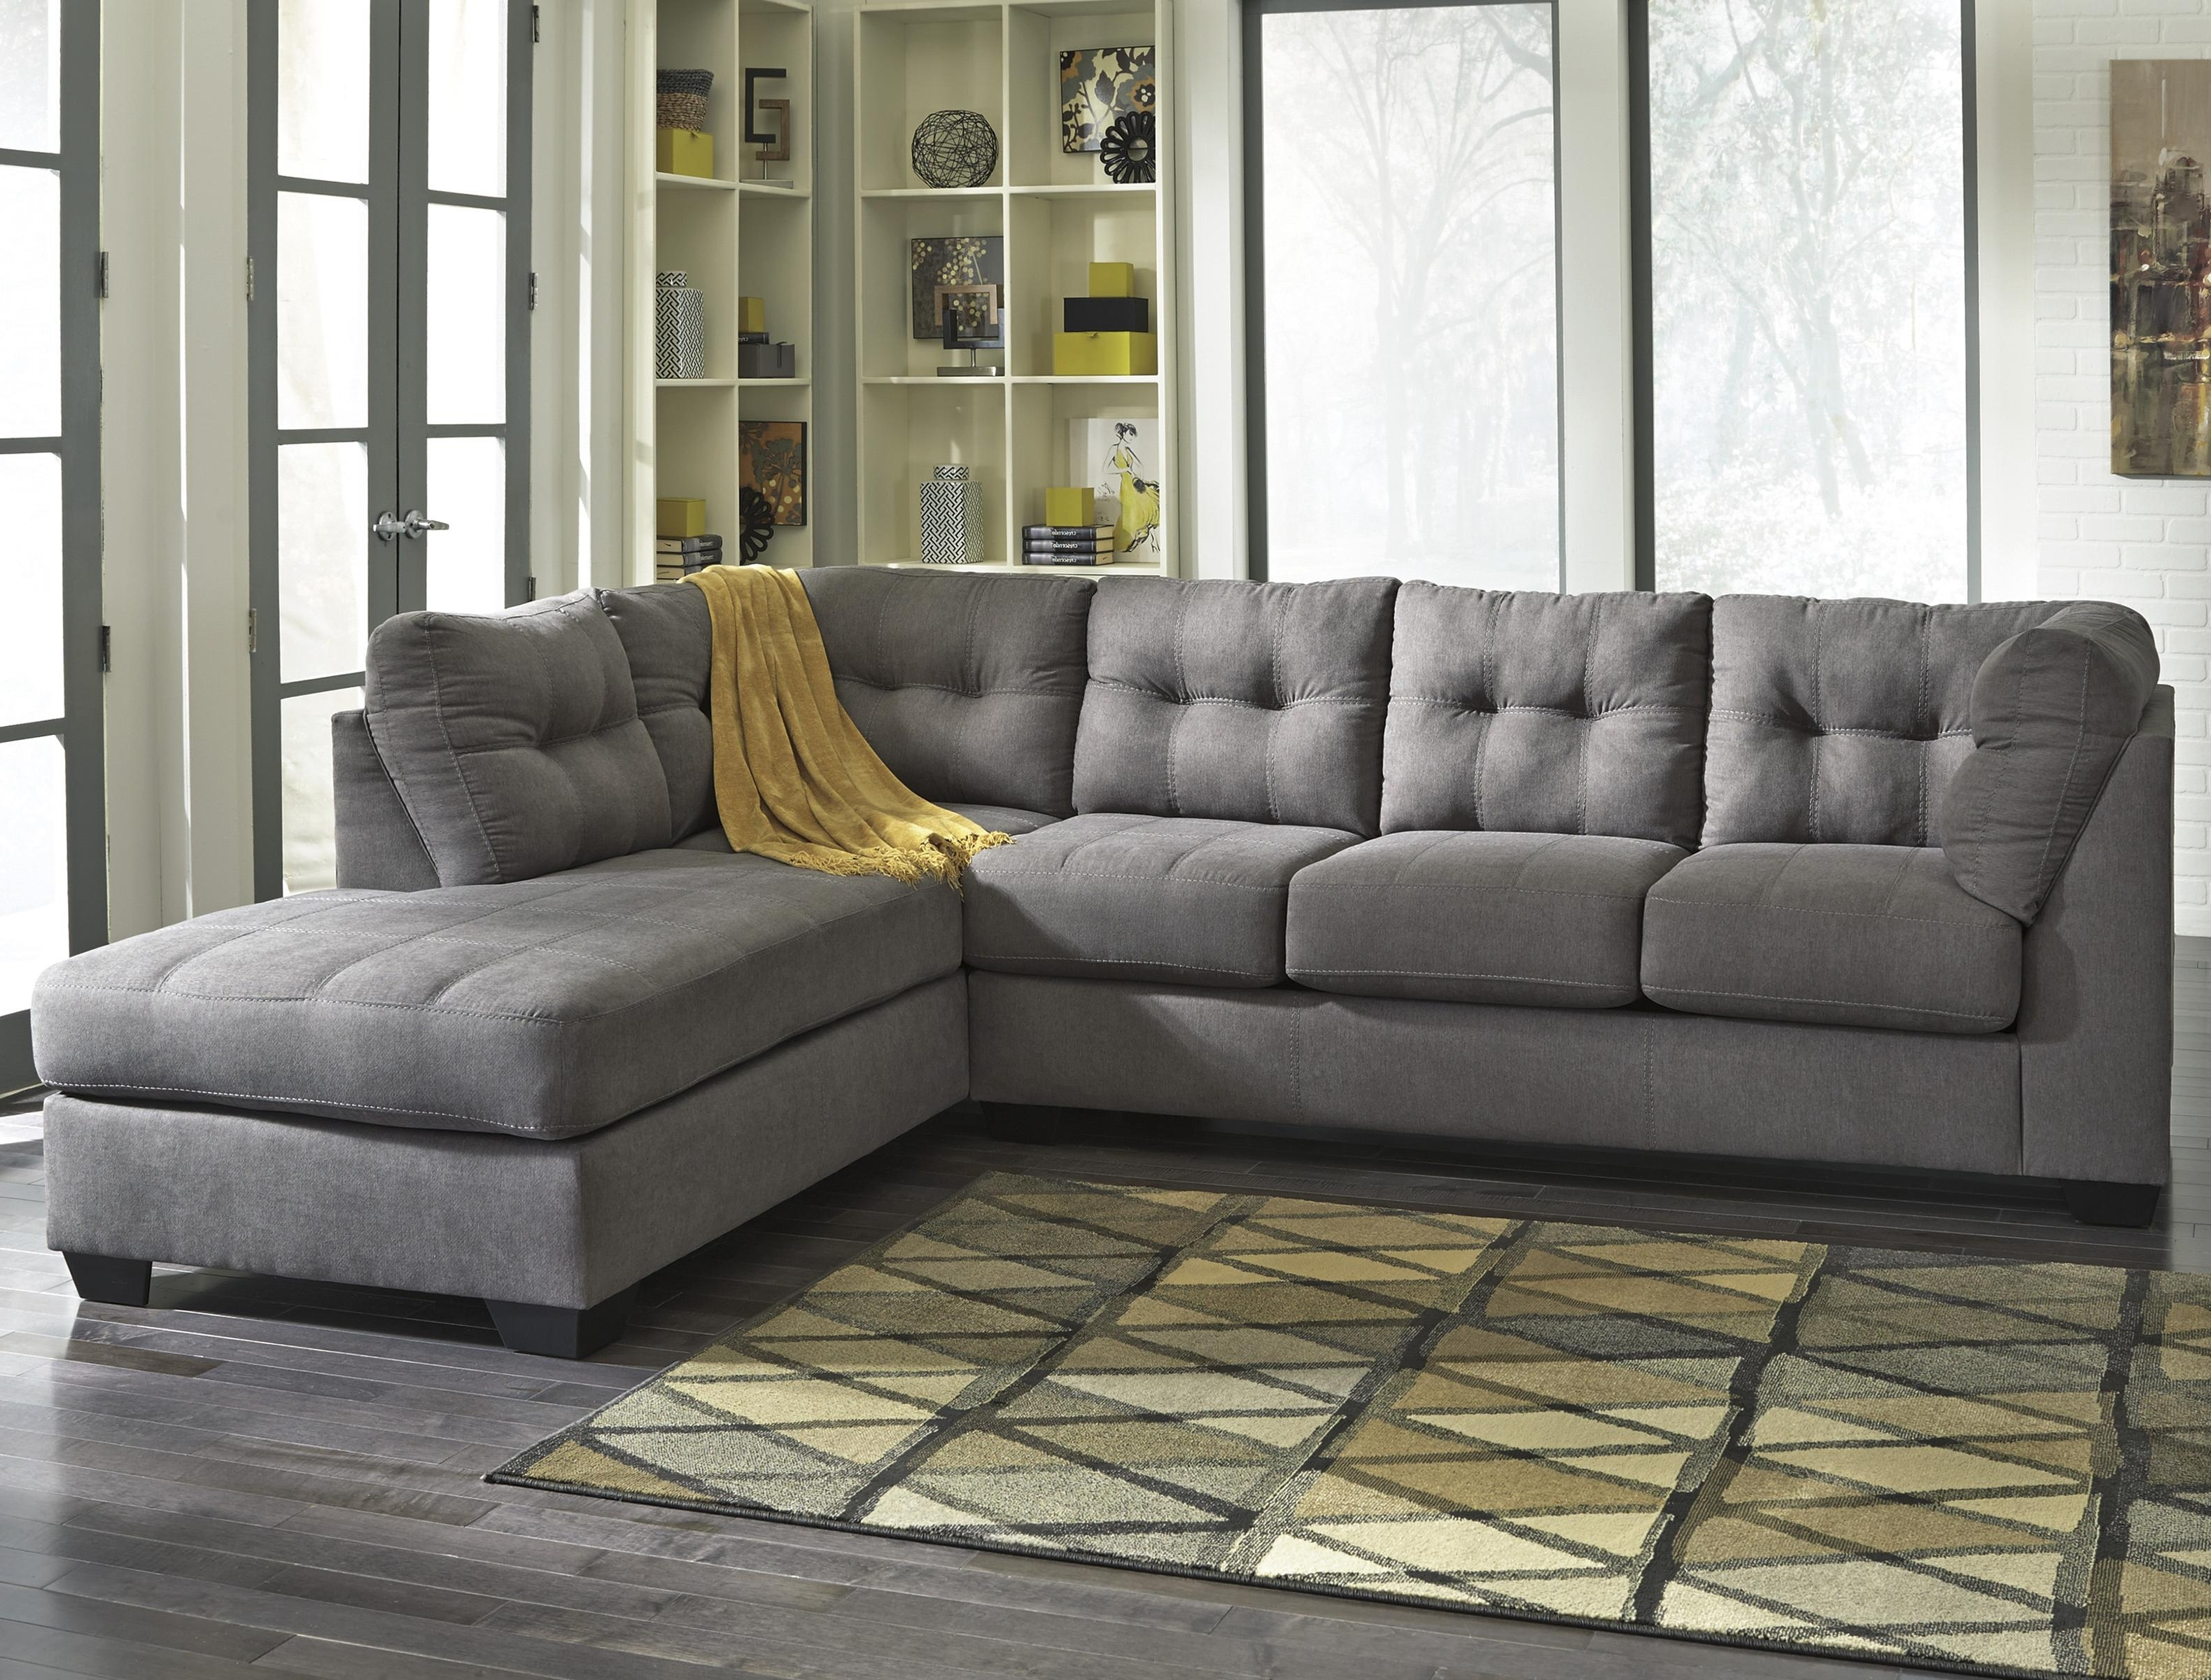 East Bay Sectional Sofas Pertaining To Favorite Benchcraft Maier – Charcoal 2 Piece Sectional With Right Chaise (View 6 of 20)